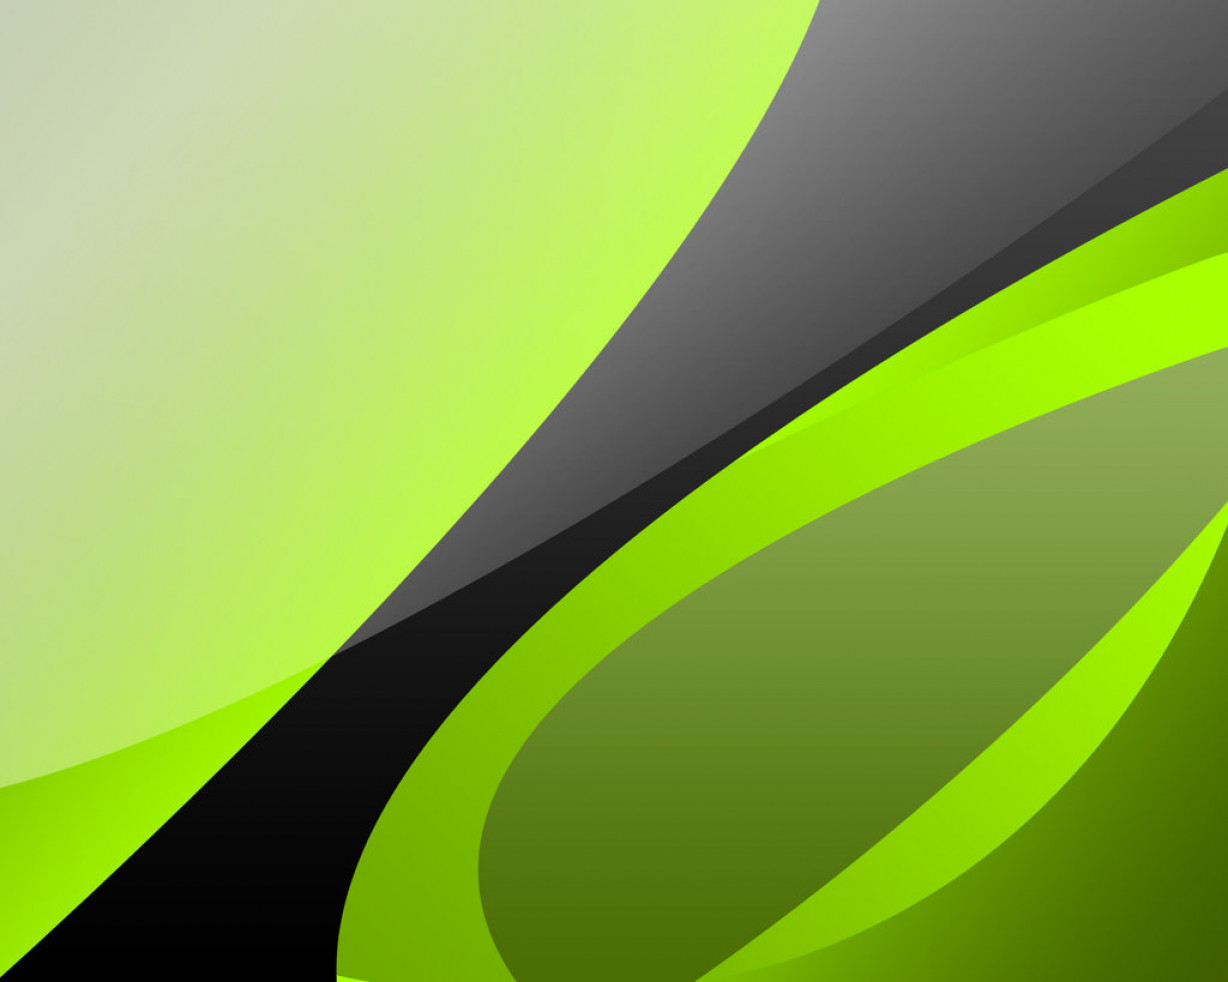 Free Vector Backgrounds Illustrator Free Download: Iiooromvector Wallpapers Designs Group Free Download Background Green